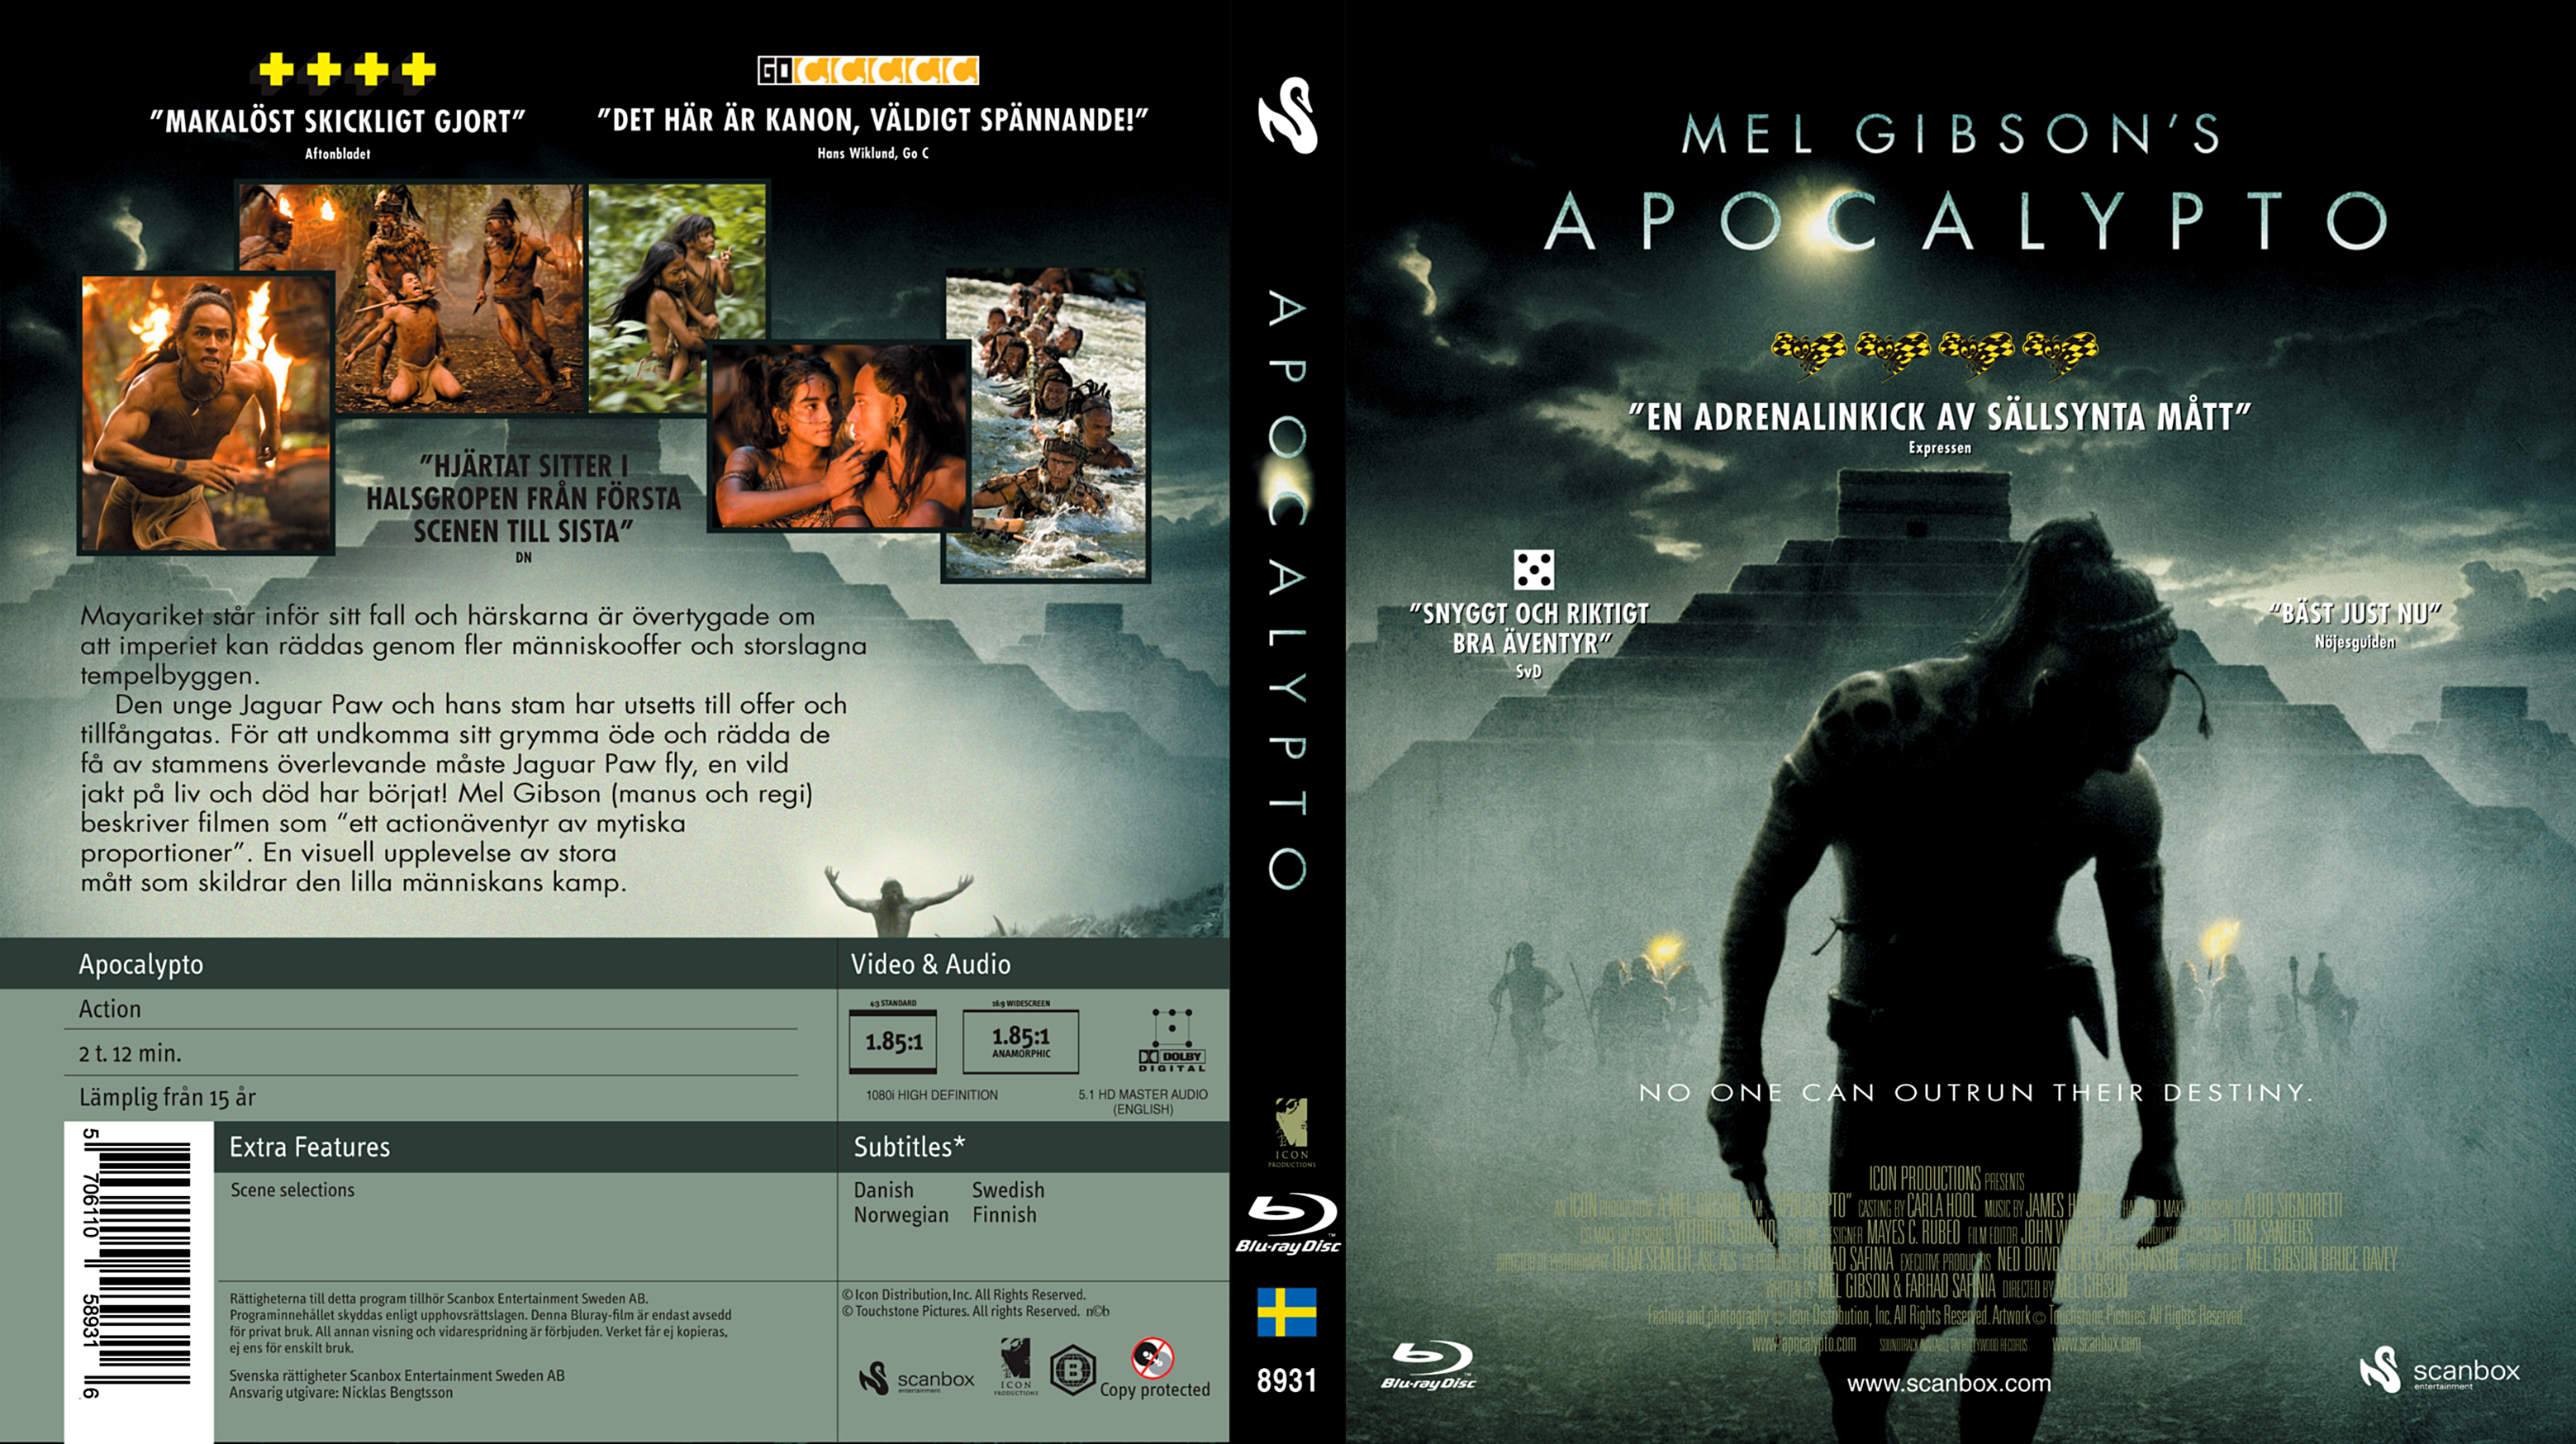 Download Film Apocalypto Blu Ray Transformers Movie Videos Dvd Tenggelamnya Kapal Van Der Wijck Redbox Locations Find At Redboxcom And